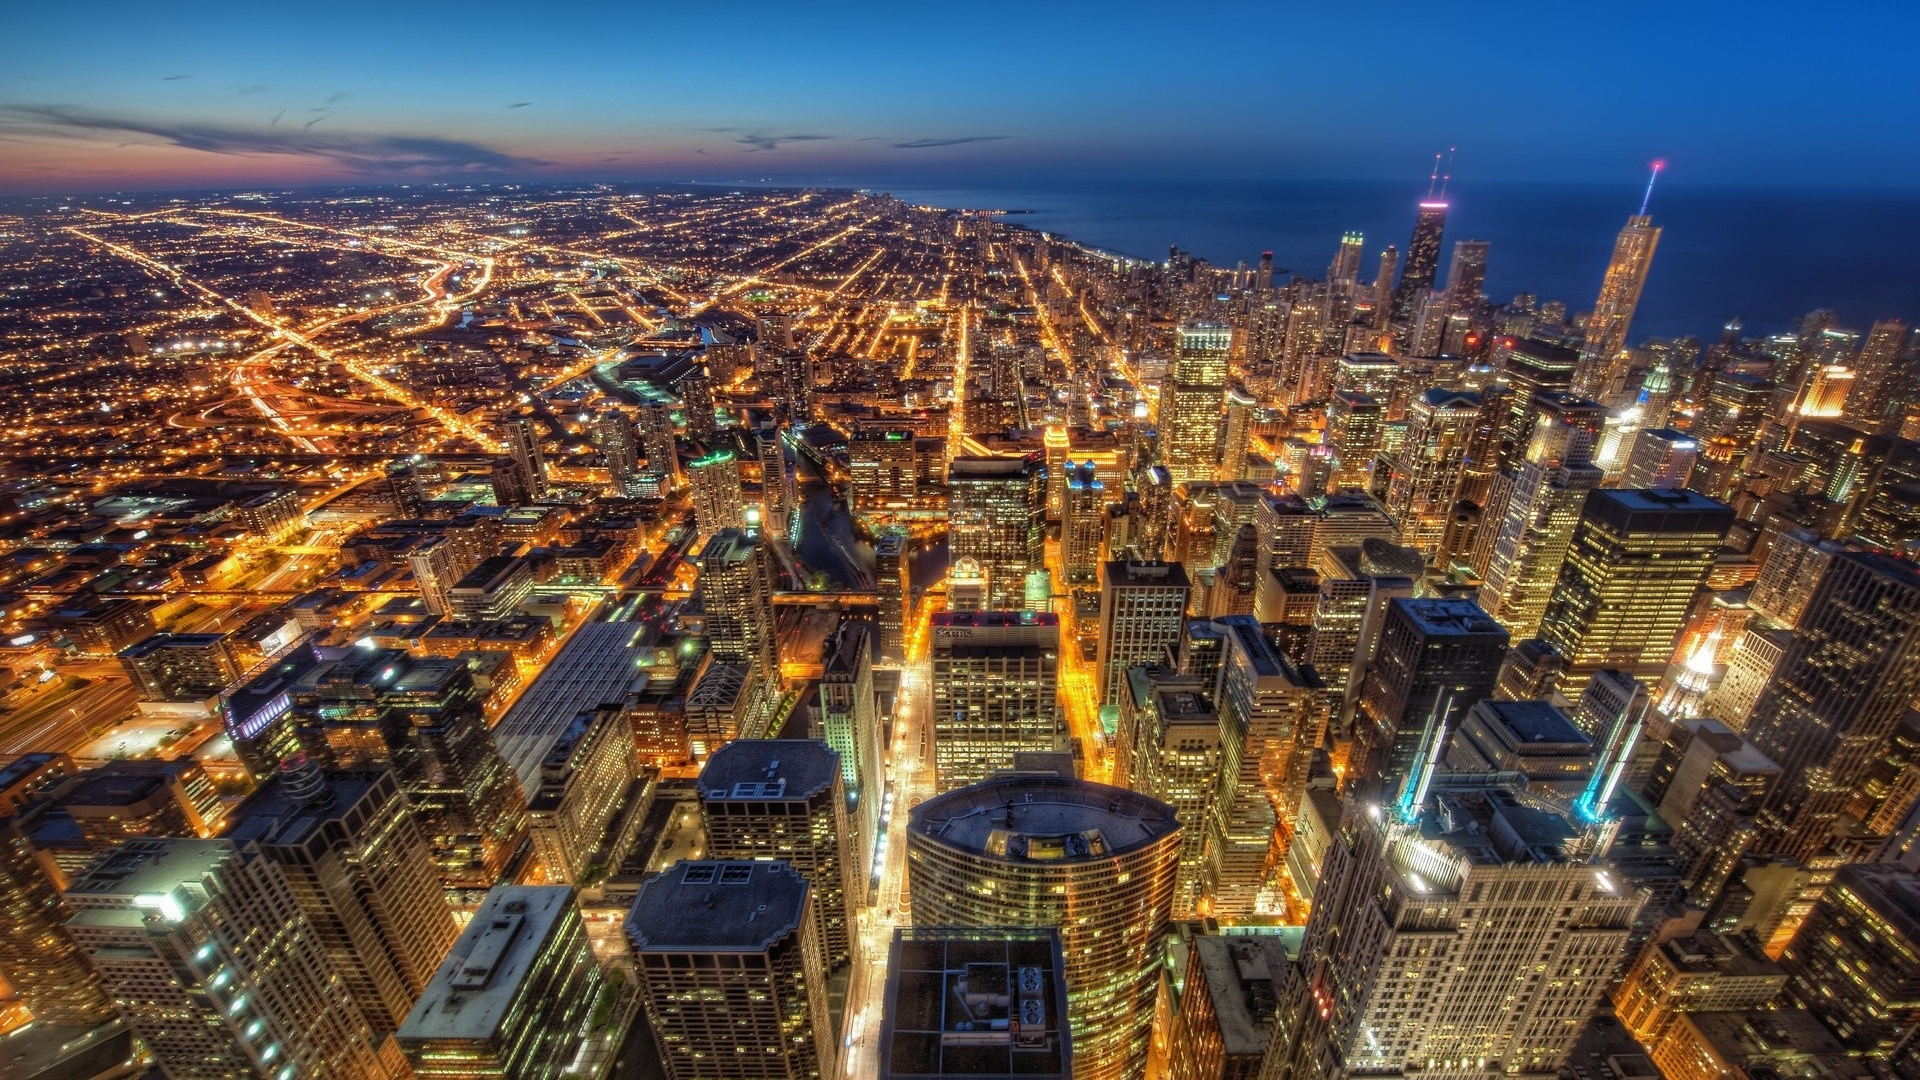 Download wallpaper 1920x1080 chicago usa skyscrapers night city chicago usa skyscrapers voltagebd Image collections